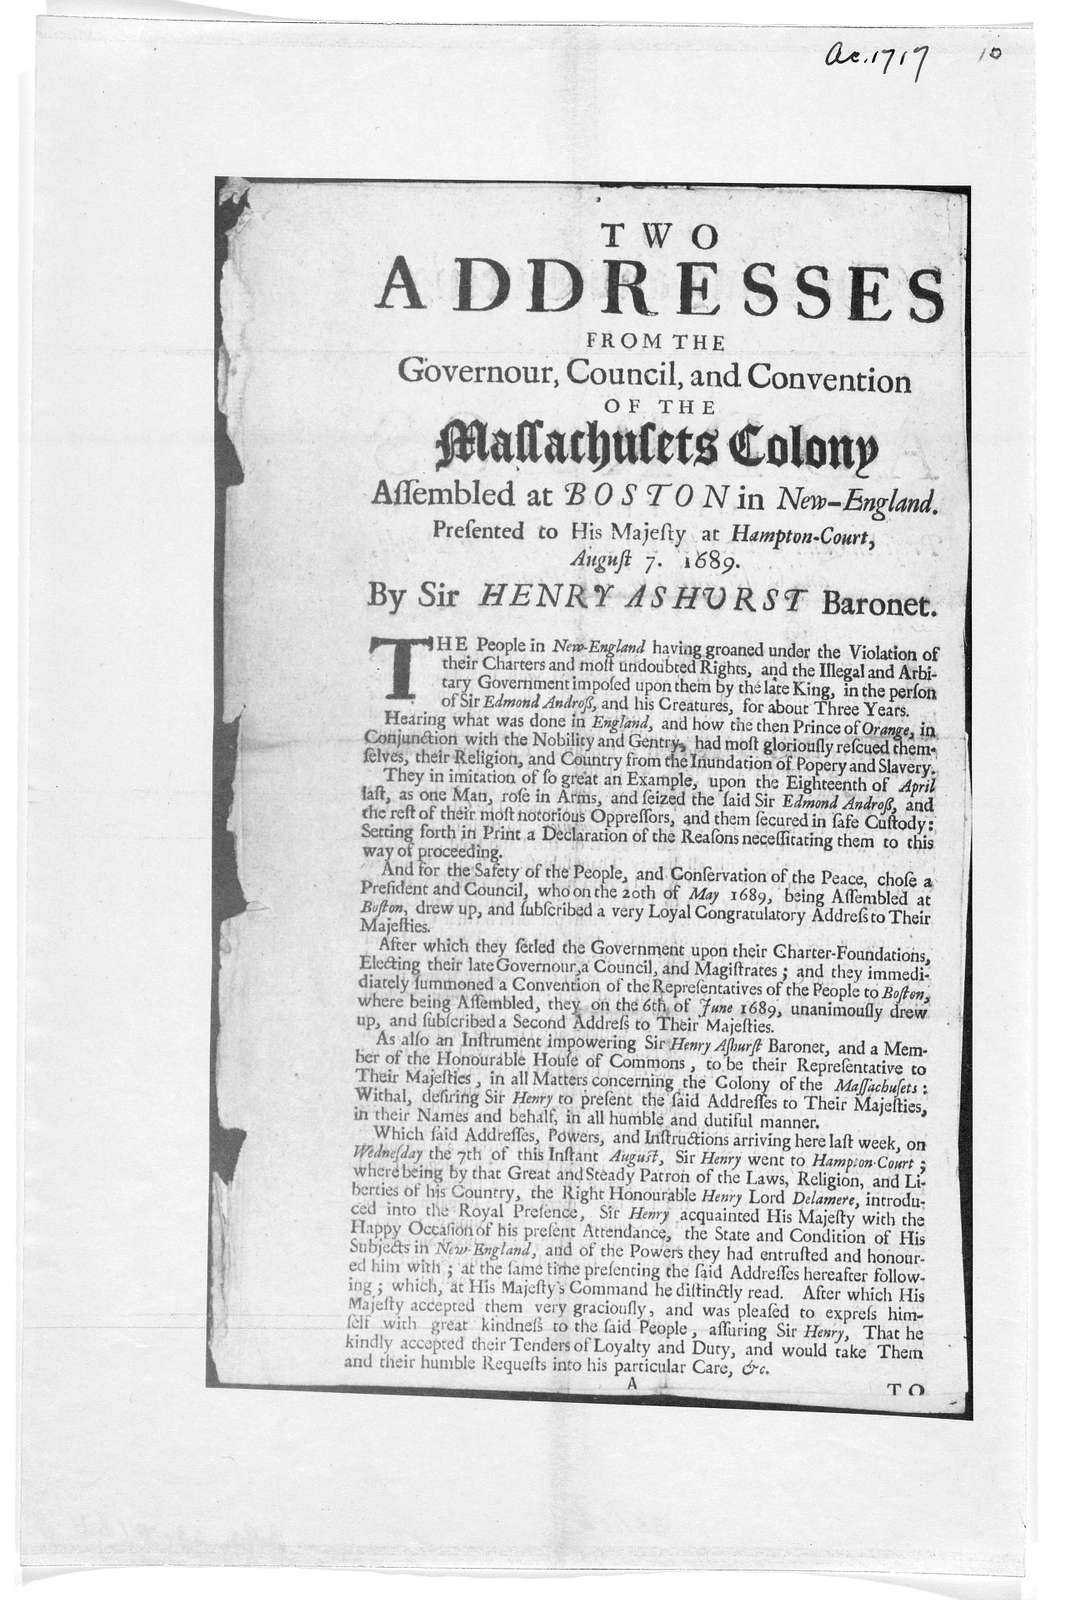 Two addresses from the Governour, council and convention of the Massachusets Colony assembled at Boston in New-England. Presented to his majesty, at Hampton-Court, August 7, 1689. By Sir Henry Ashurst Baronet.